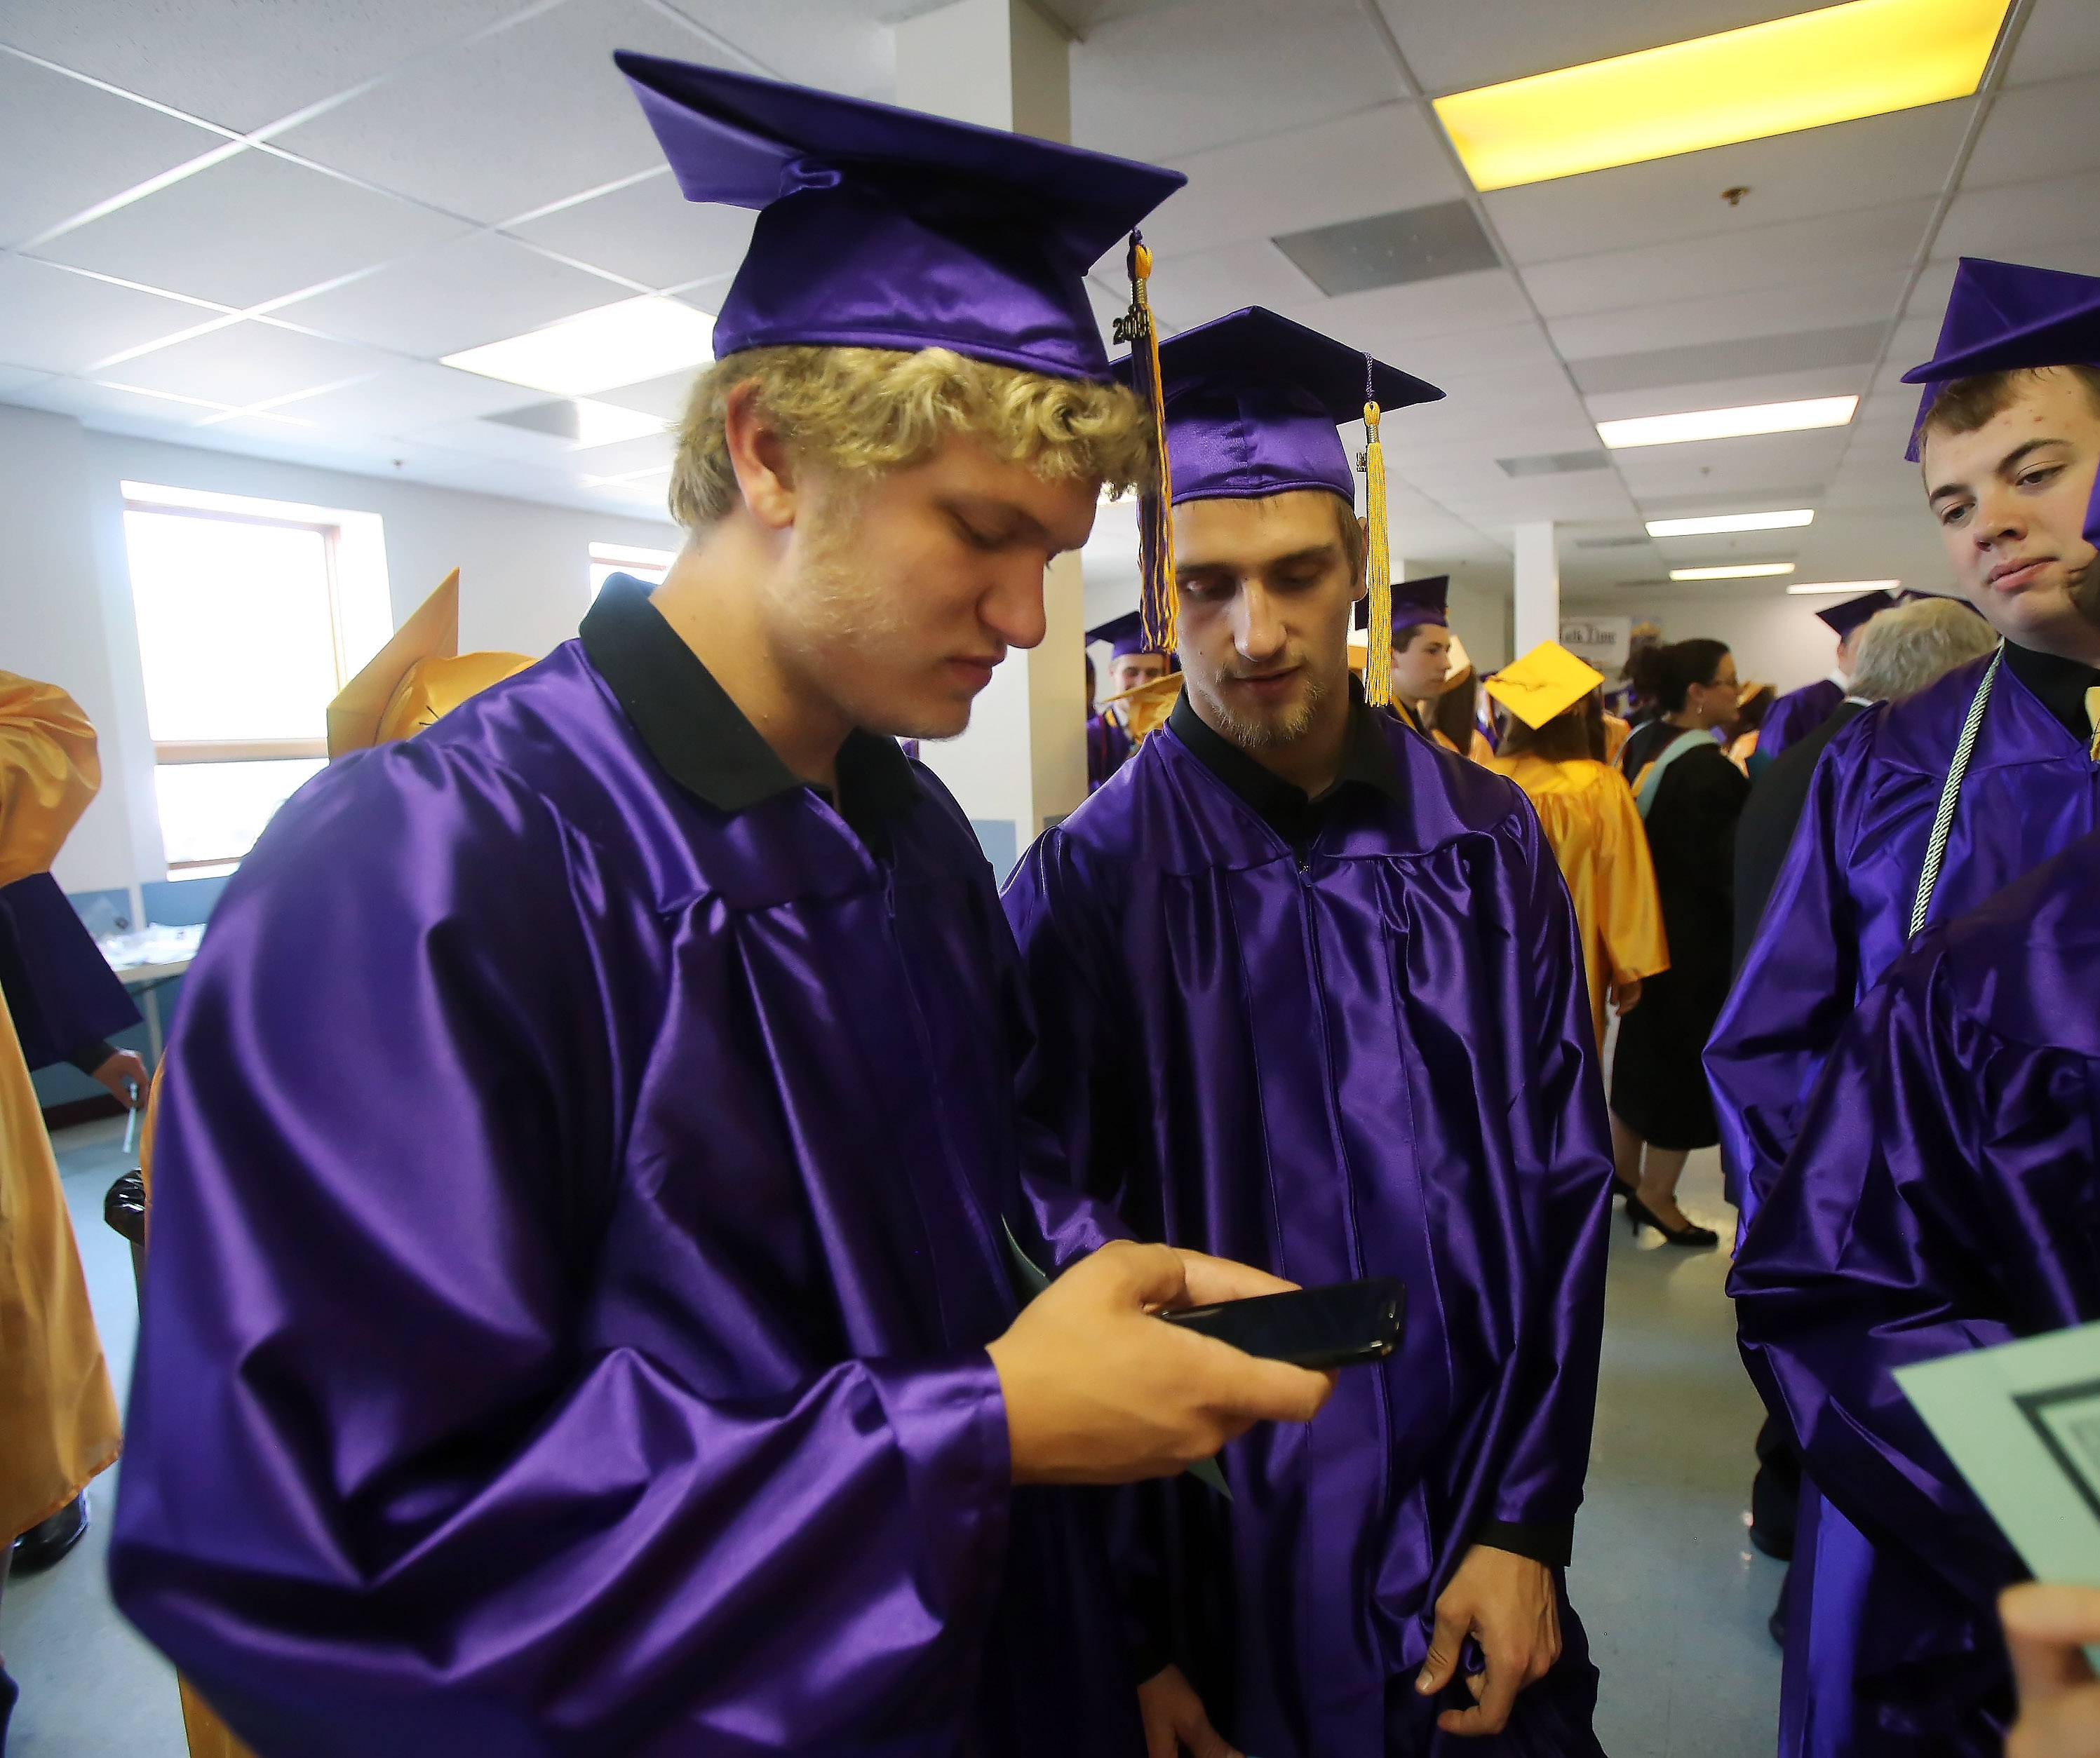 Luke Fugle, left, and Ben Kimlinger keep up with the Chicago Blackhawks playoff game during the 98th annual Wauconda High School graduation on Sunday at Quentin Bible Church in Lake Zurich. There were 289 graduates at this years commencement ceremony.